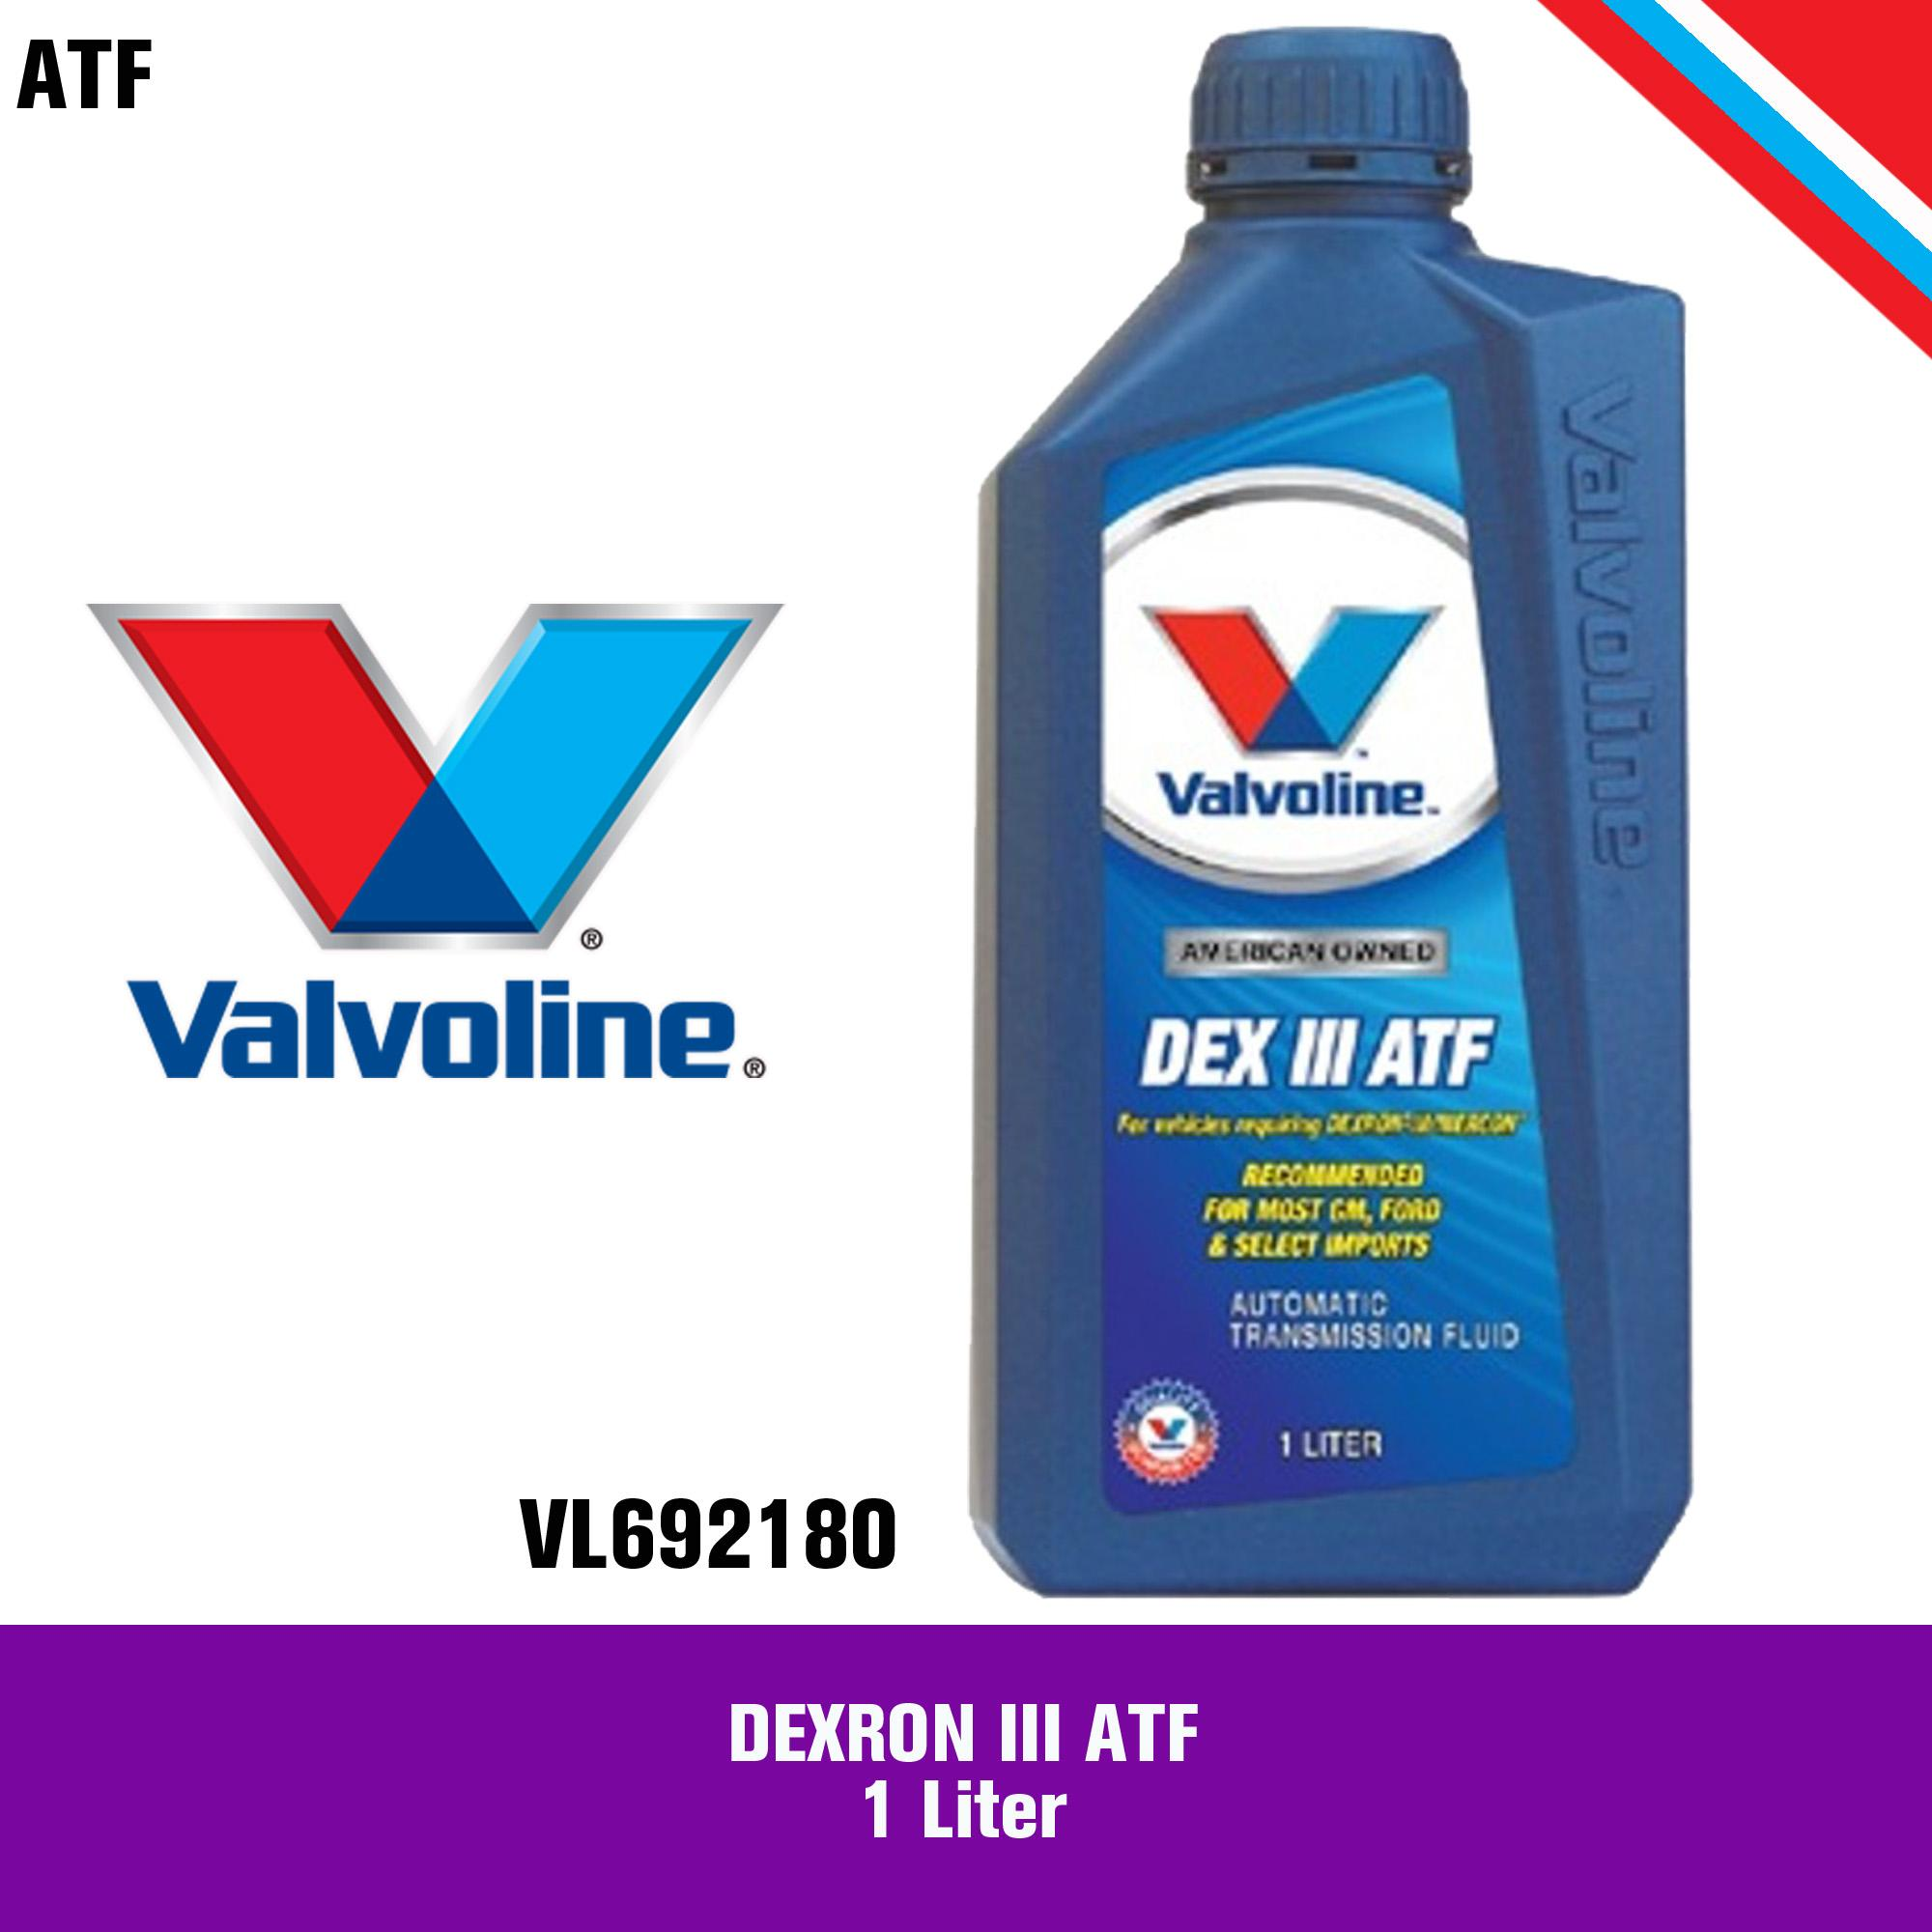 Valvoline - Buy Valvoline at Best Price in Philippines | www